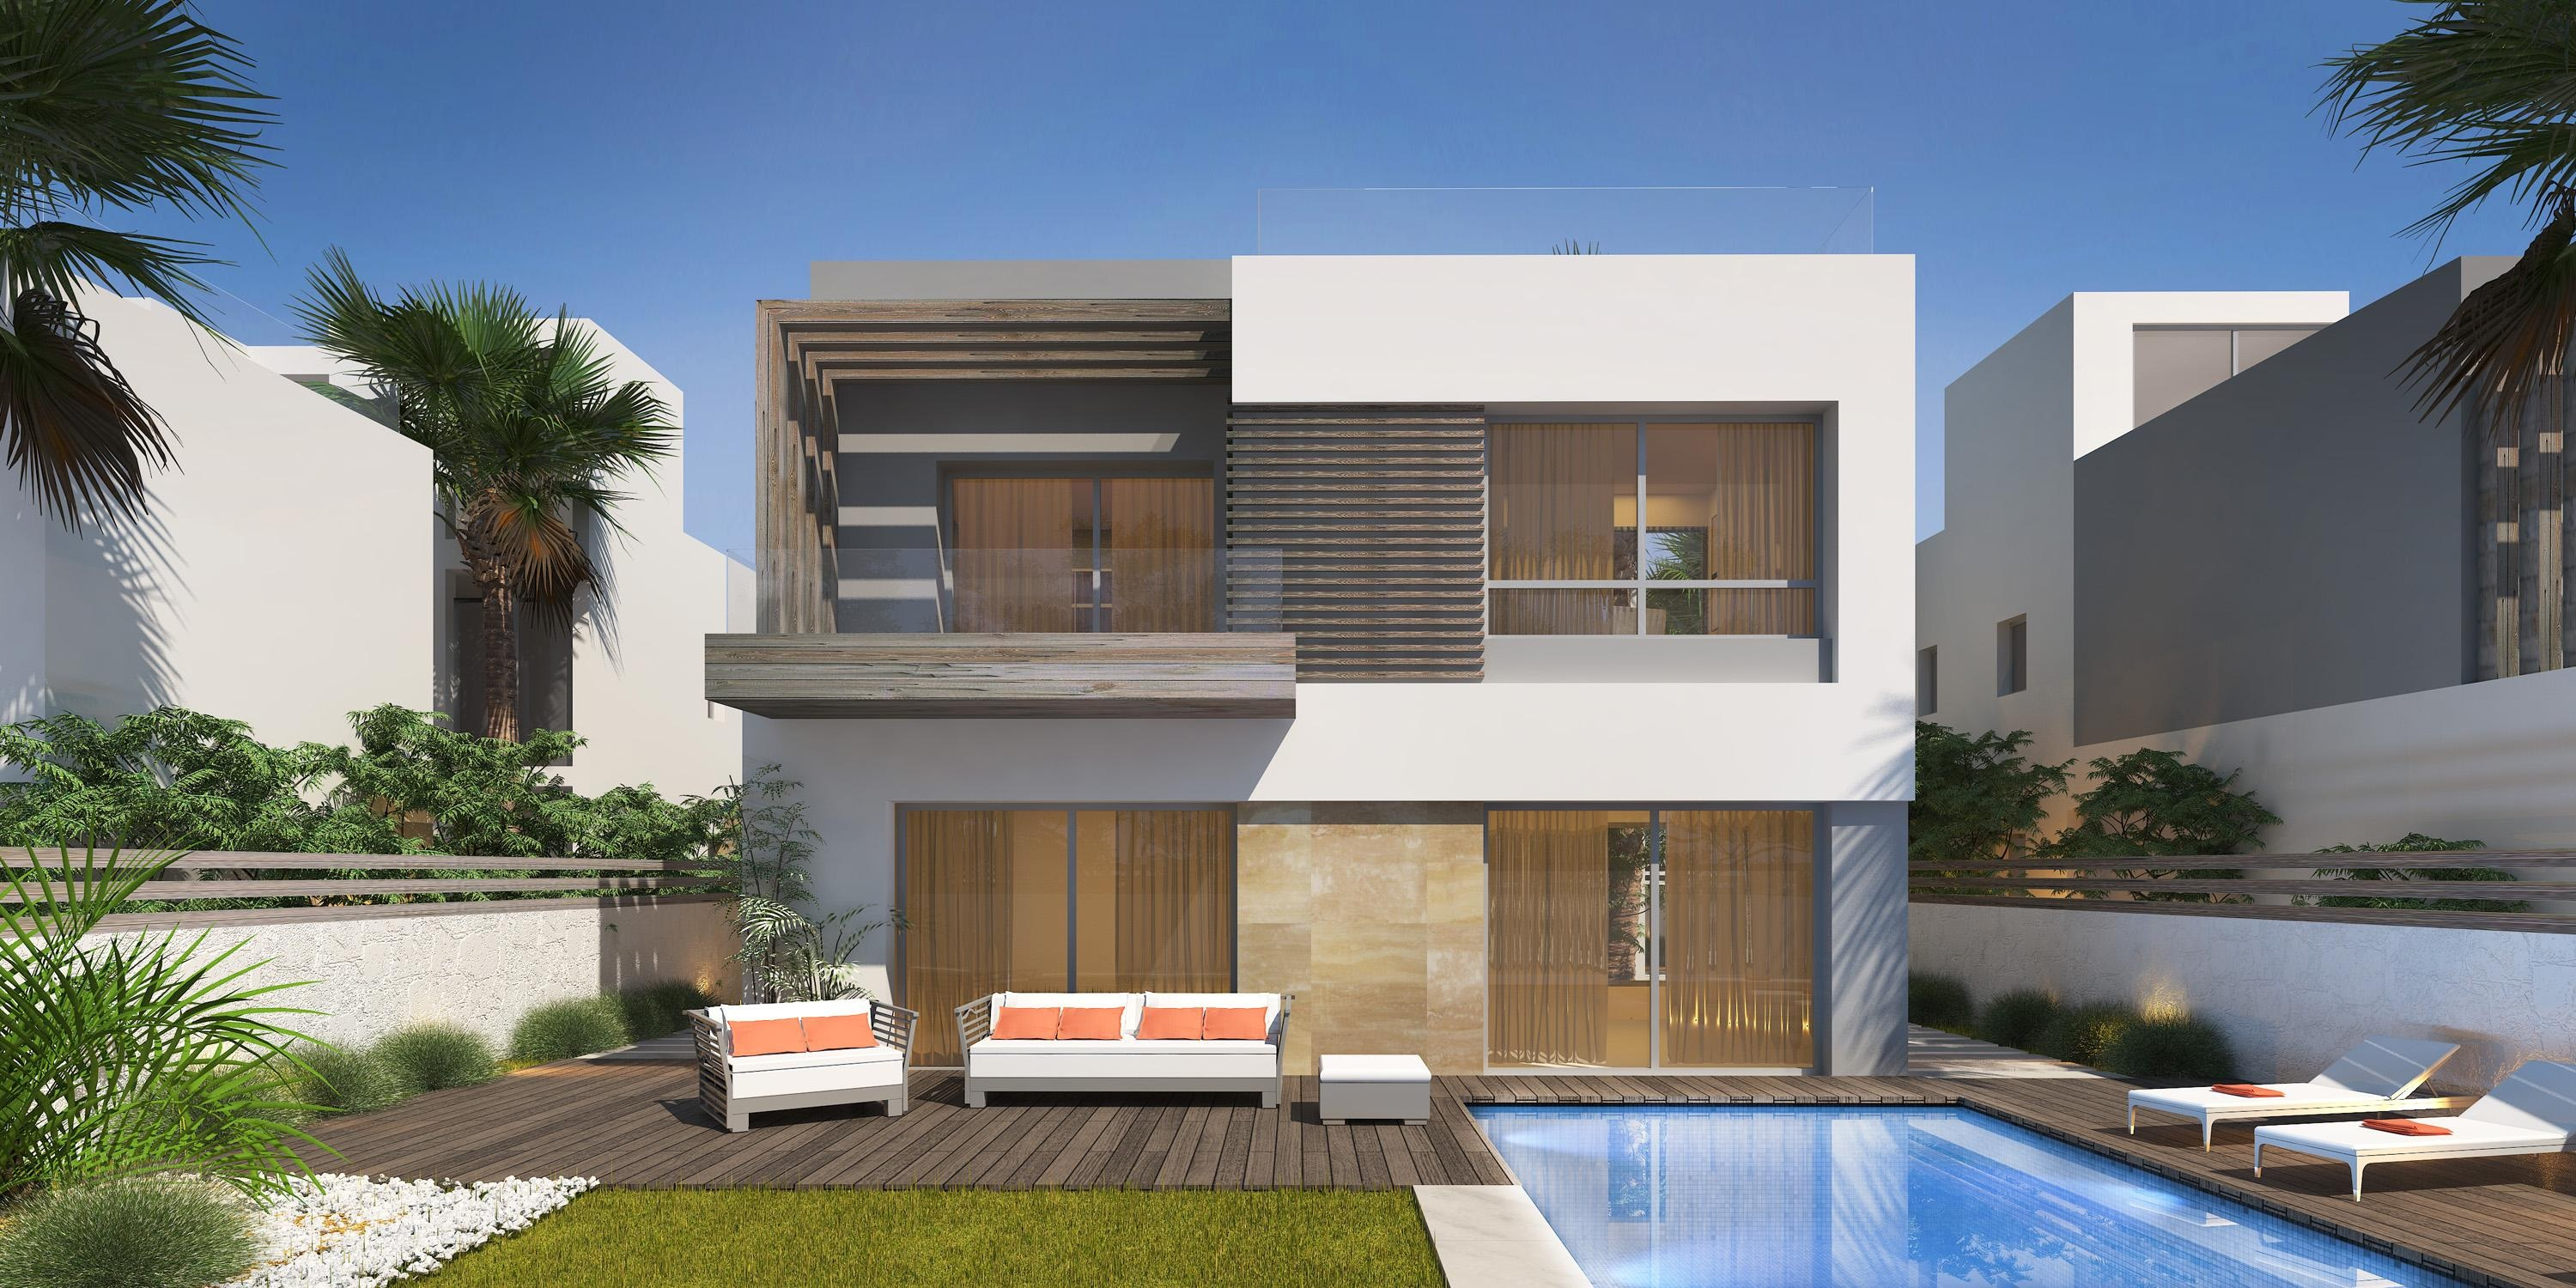 2034-the-crown-phase-2-villa-type-d